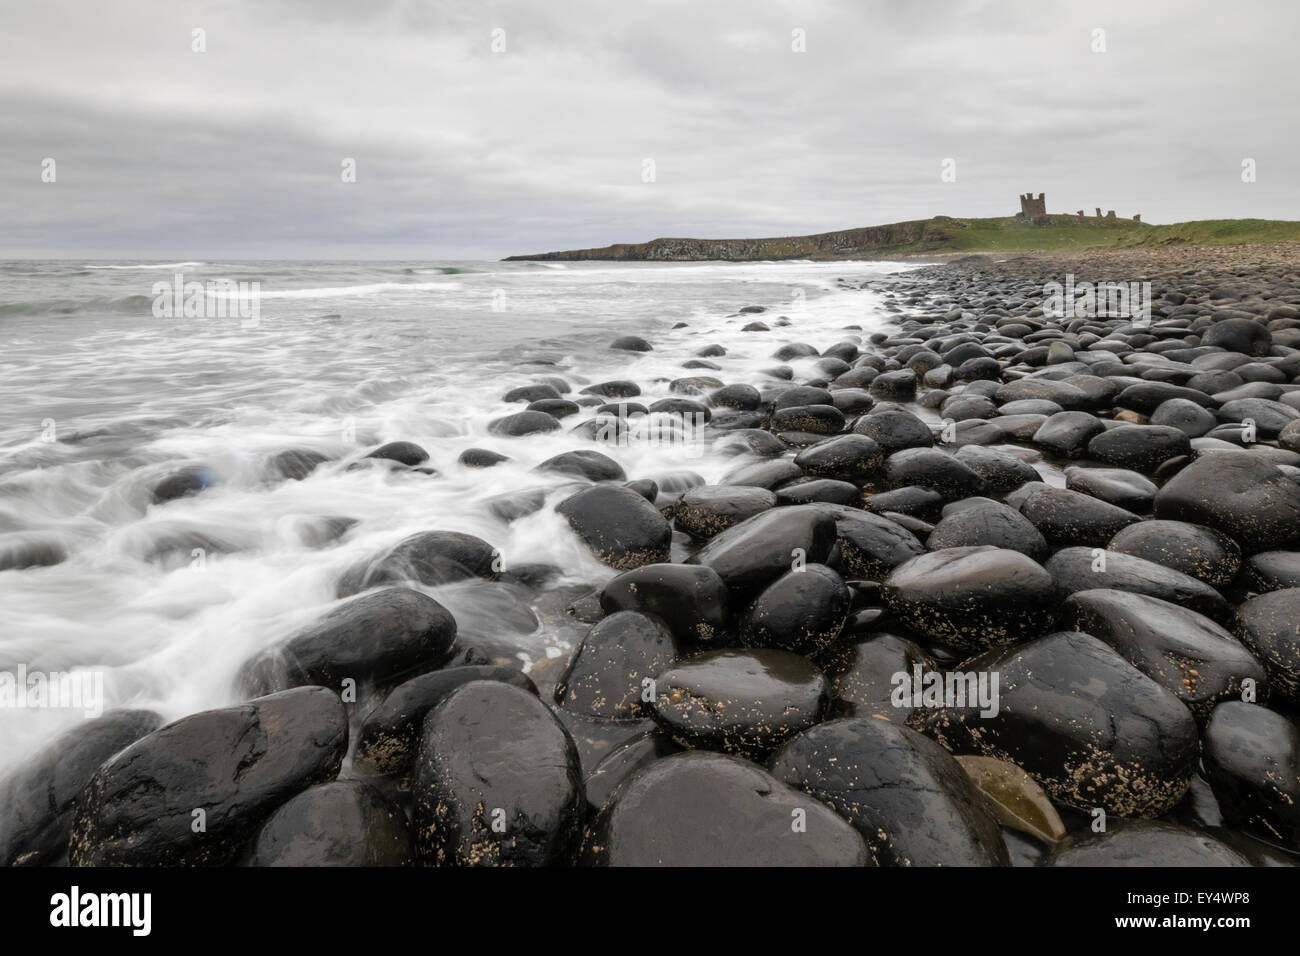 Dunstanburgh Castle on the coast of Northumberland in northern England - Stock Image